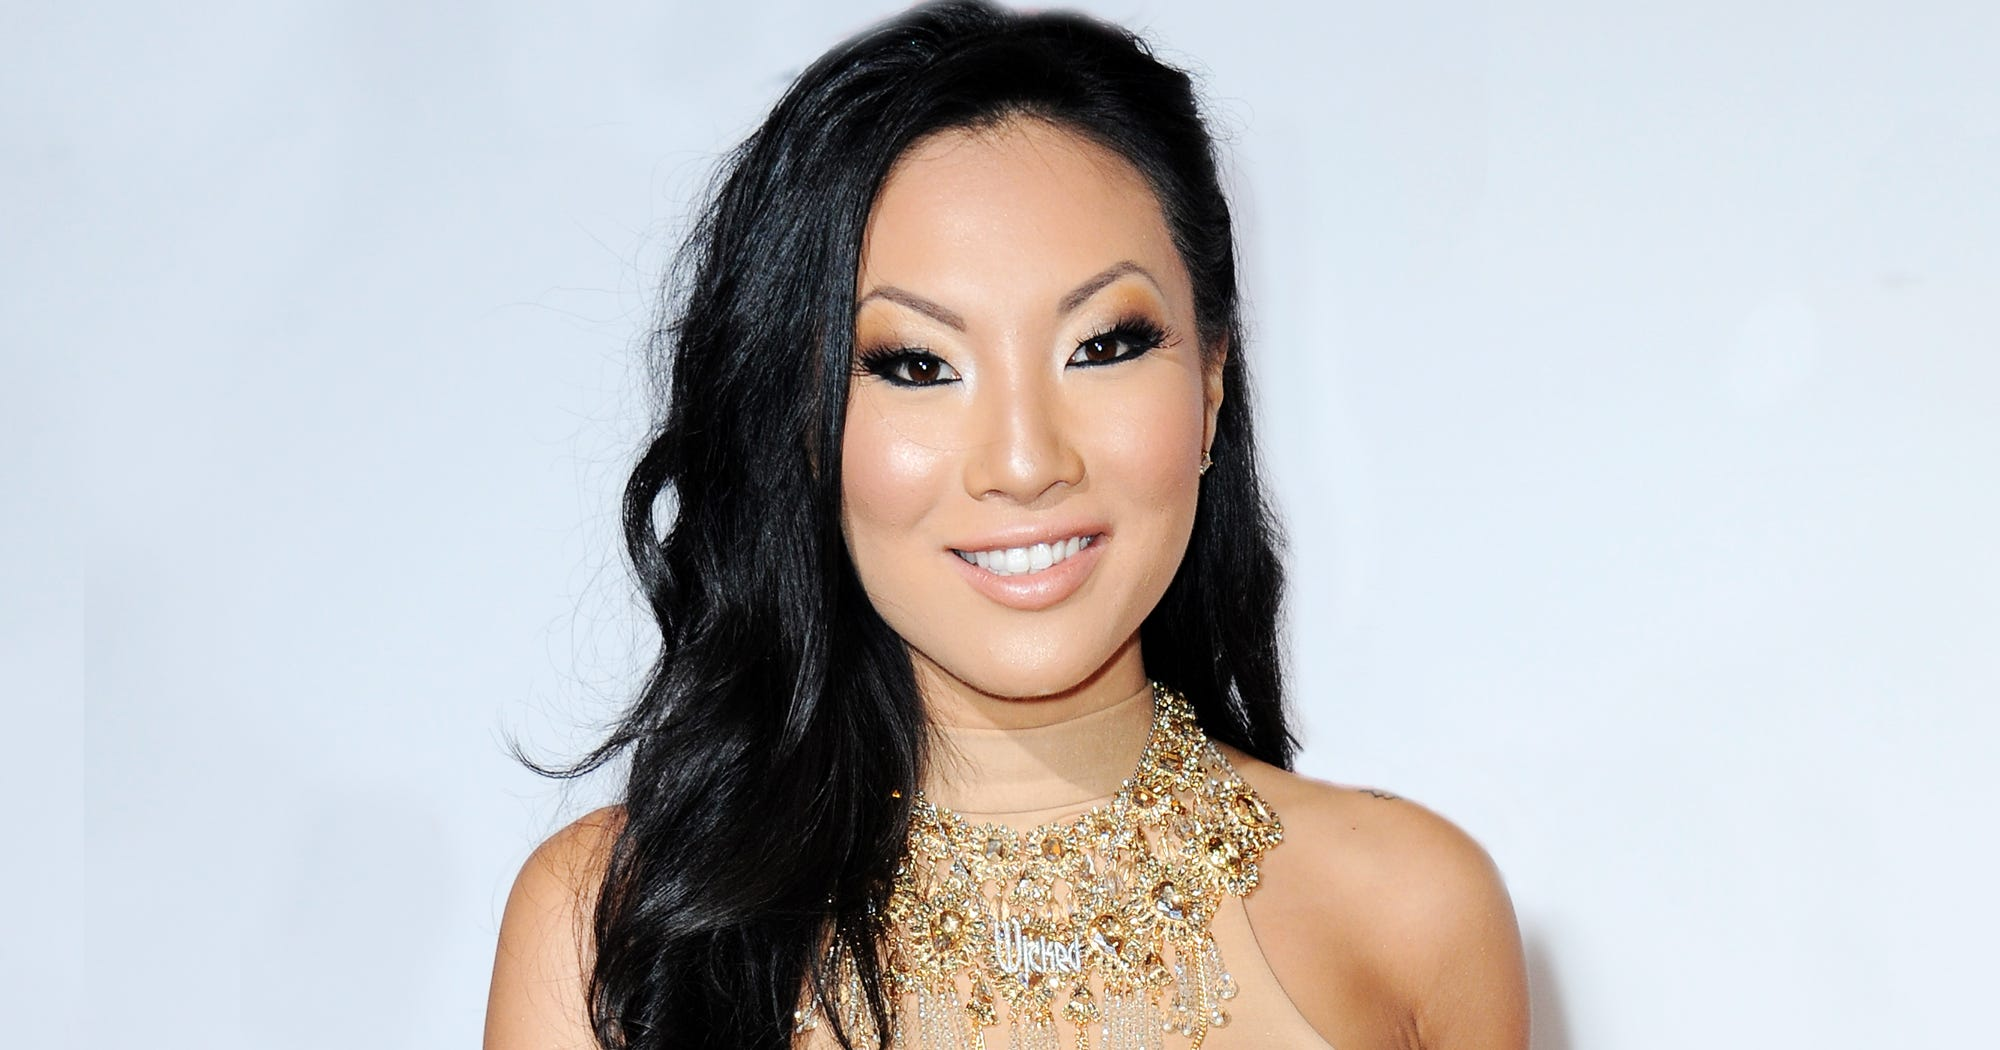 Asa Akira Porn Star Turned Author Dirty Thirty, Excerpt-1977